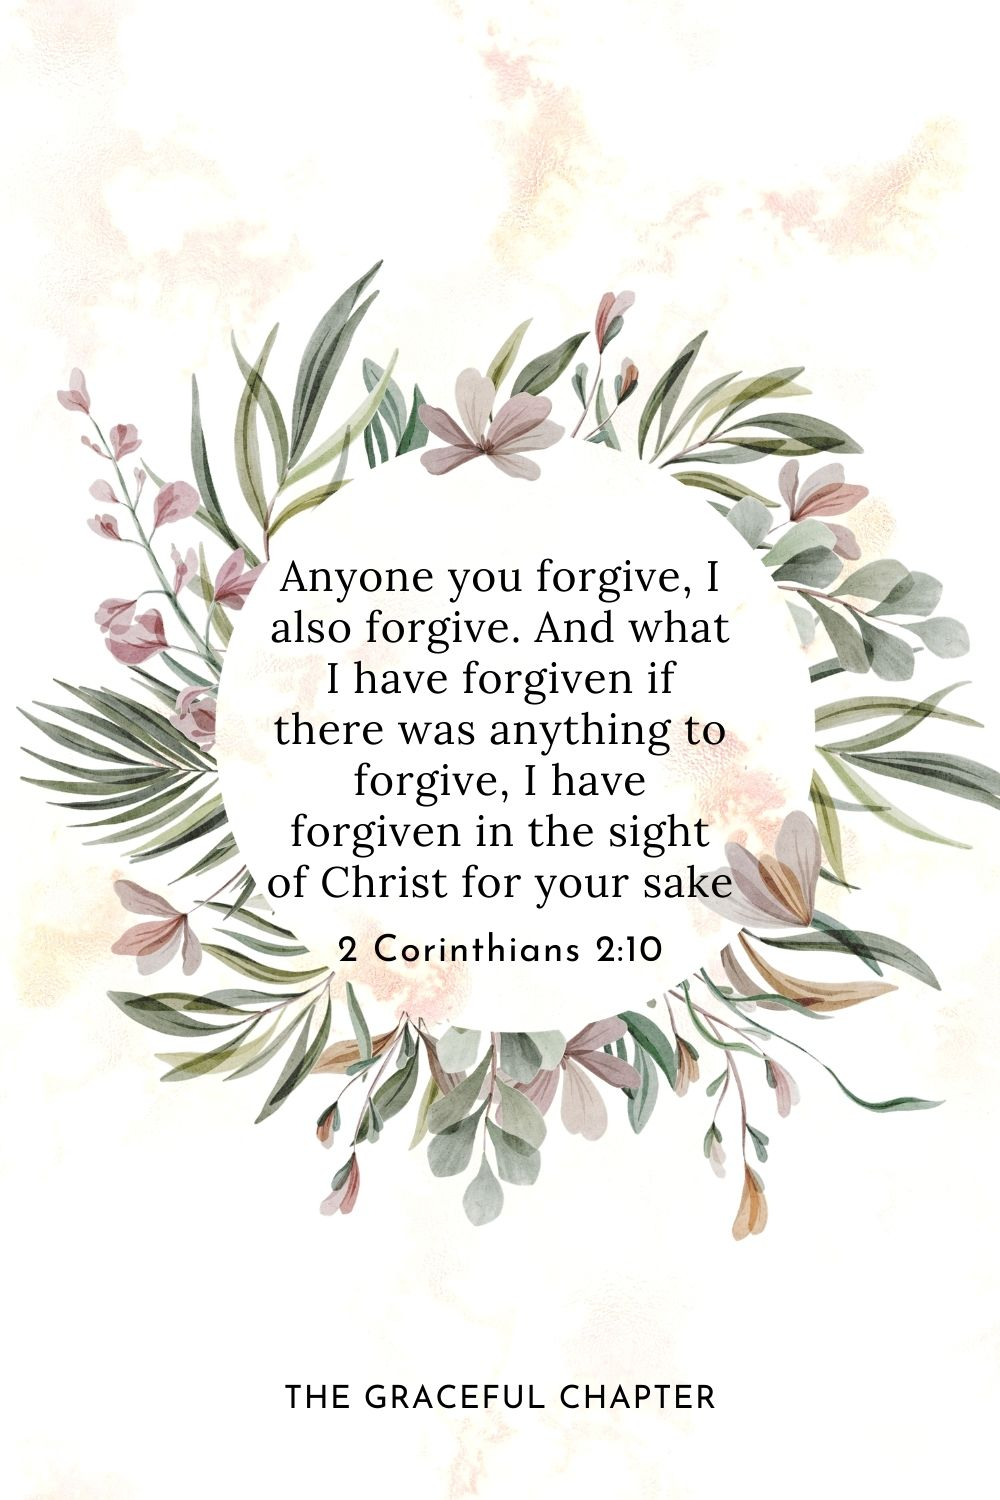 Anyone you forgive, I also forgive. And what I have forgiven if there was anything to forgive, I have forgiven in the sight of Christ for your sake 2 Corinthians 2:10